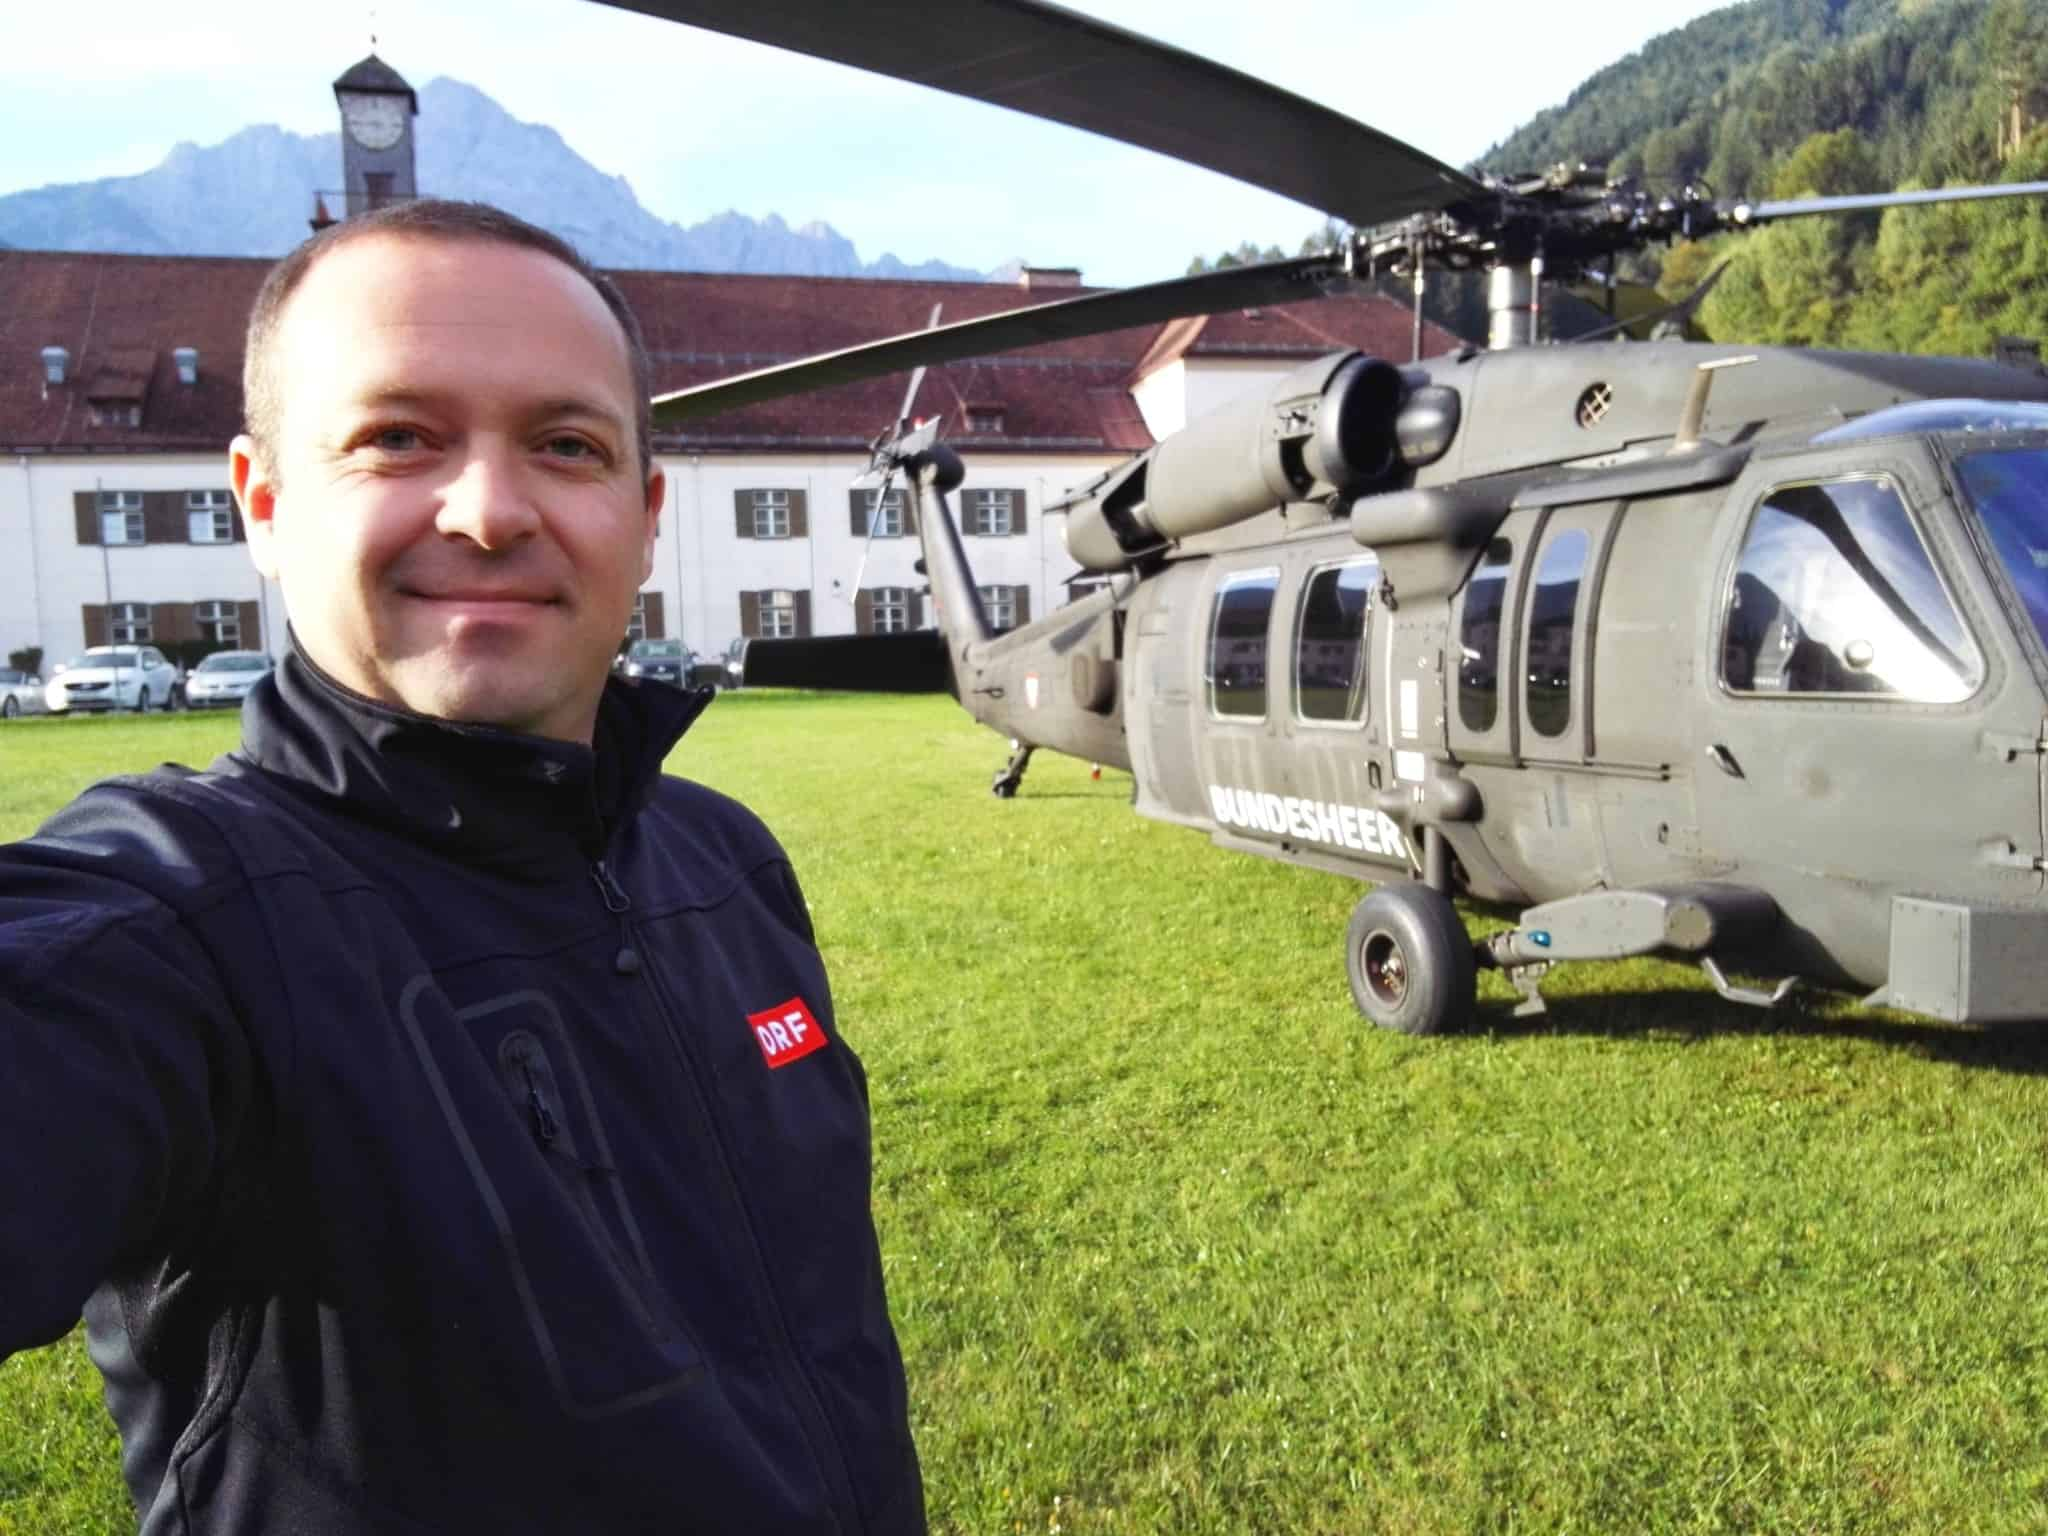 orf black hawk bundesheer lienz 1 - ORF - Black Hawk Bundesheer